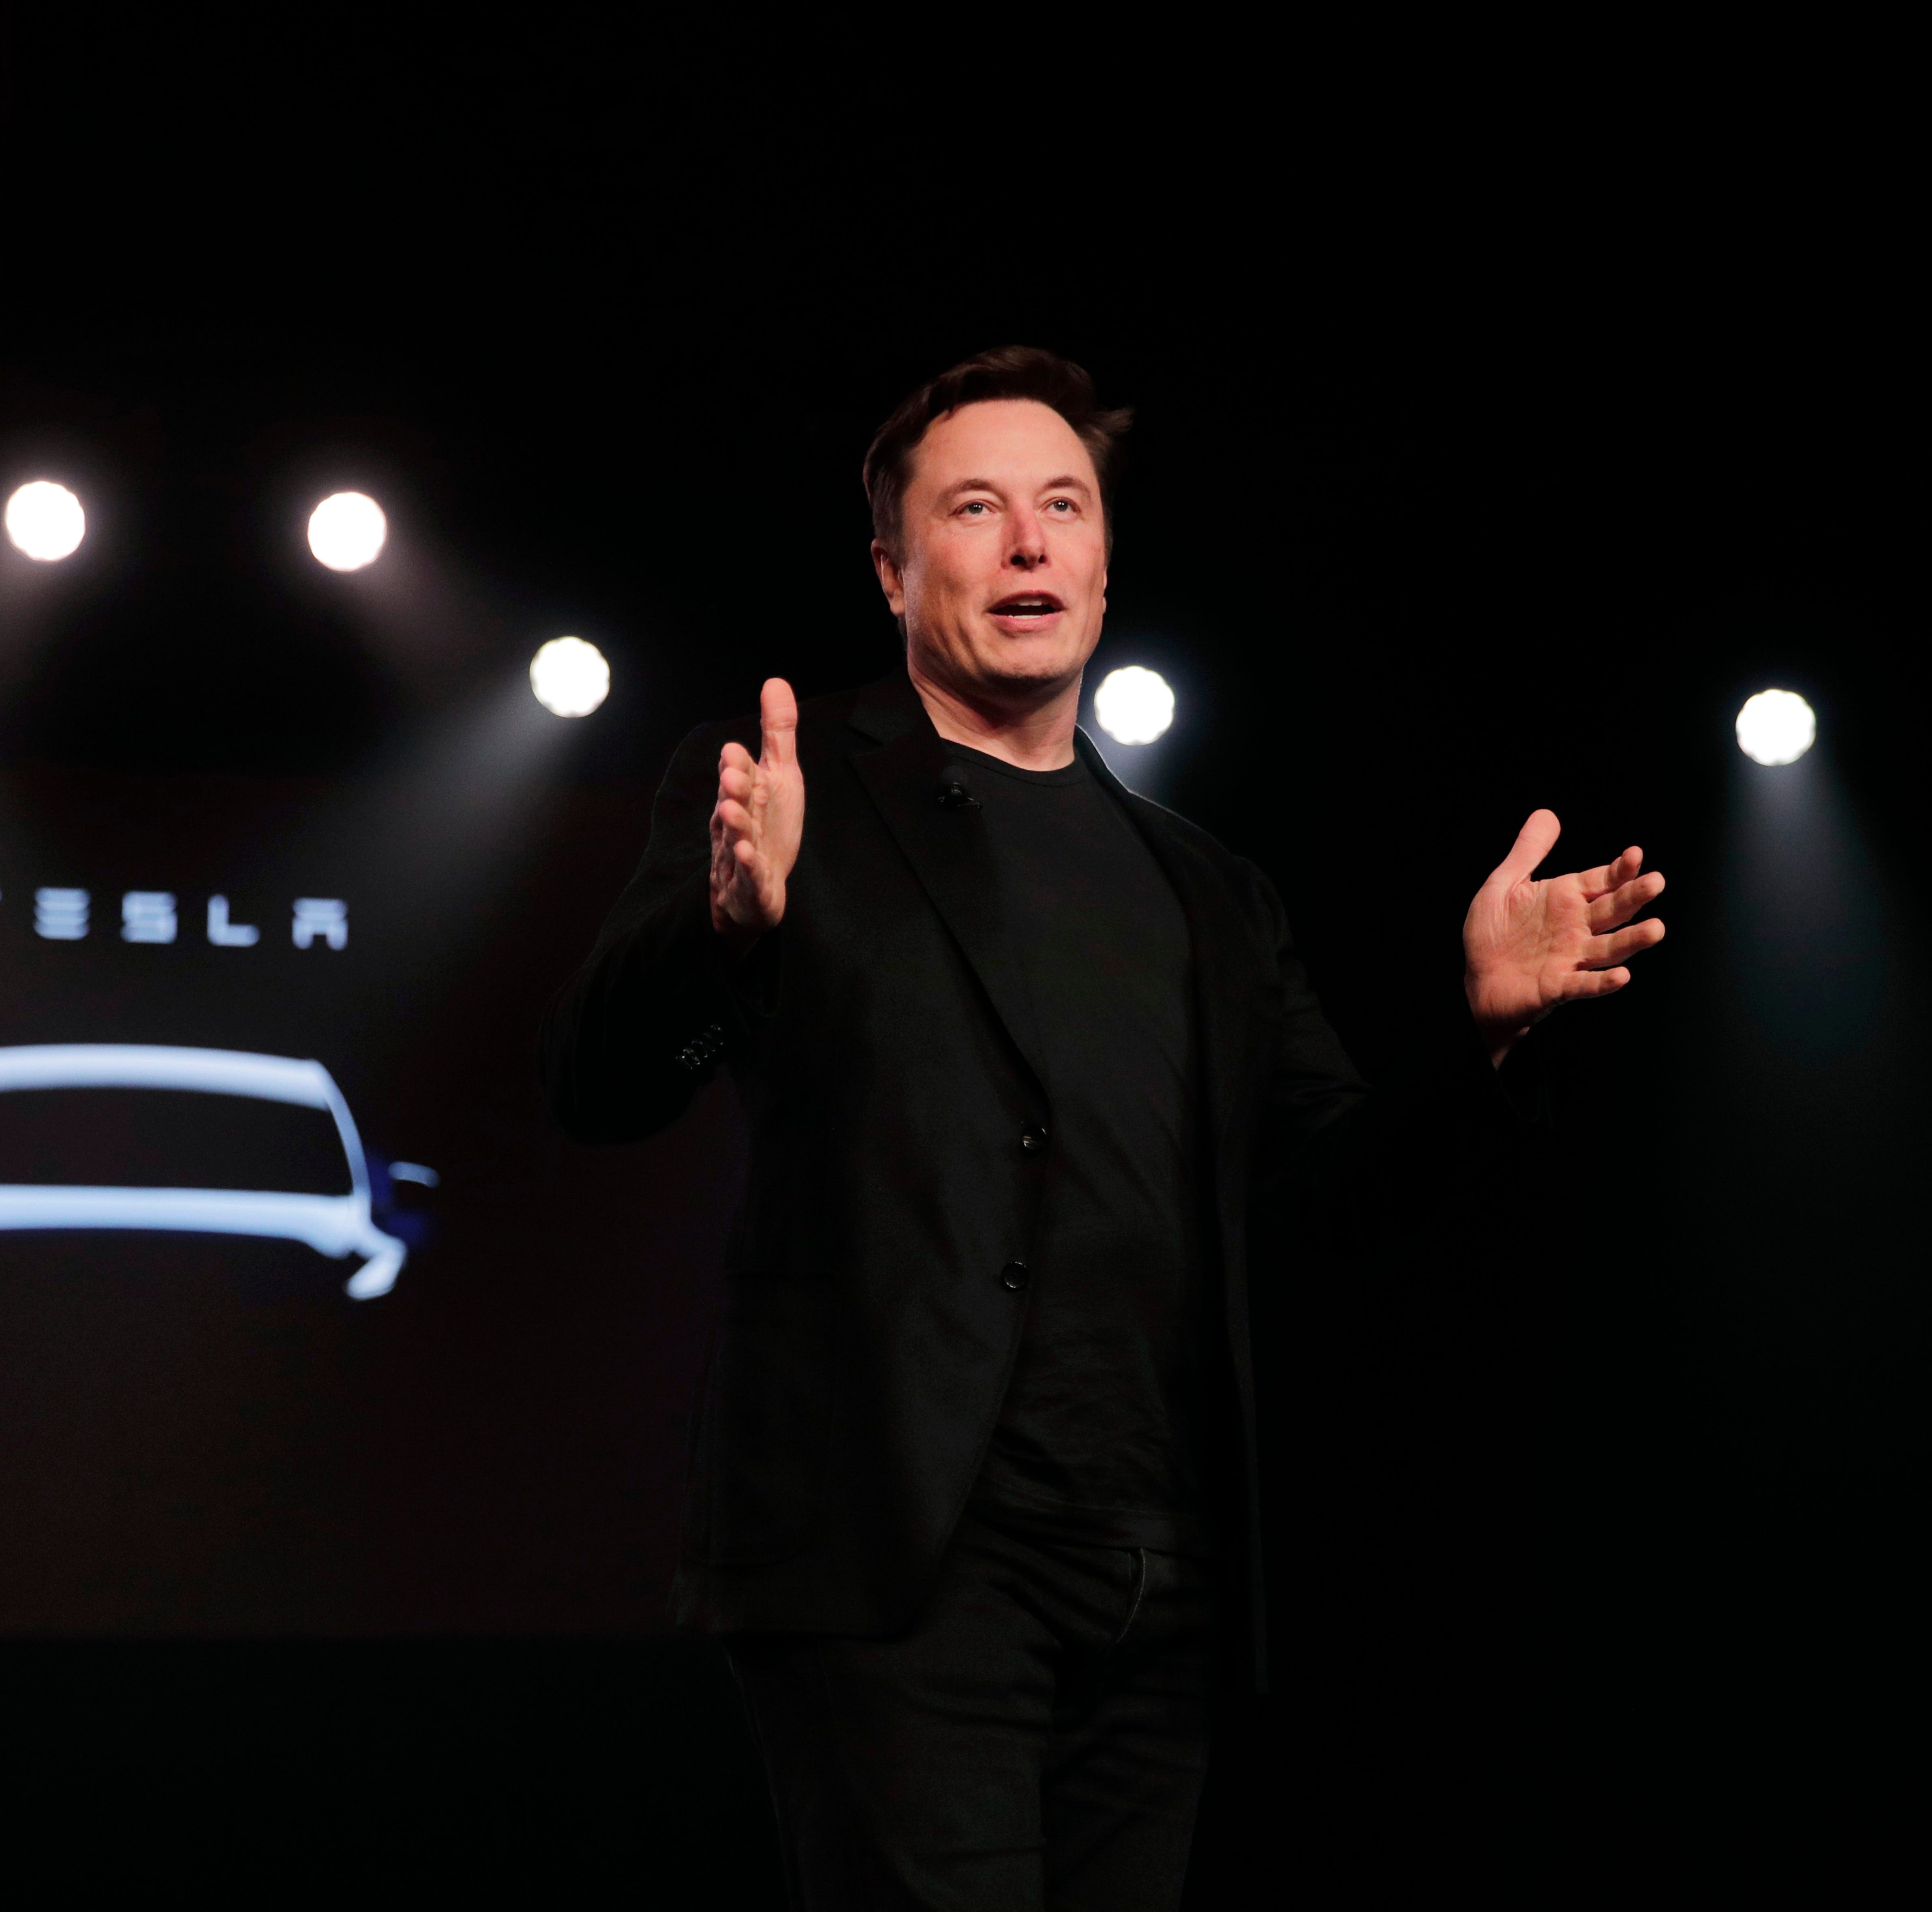 Howes: Tesla's troubles threaten to deepen as rivals accelerate